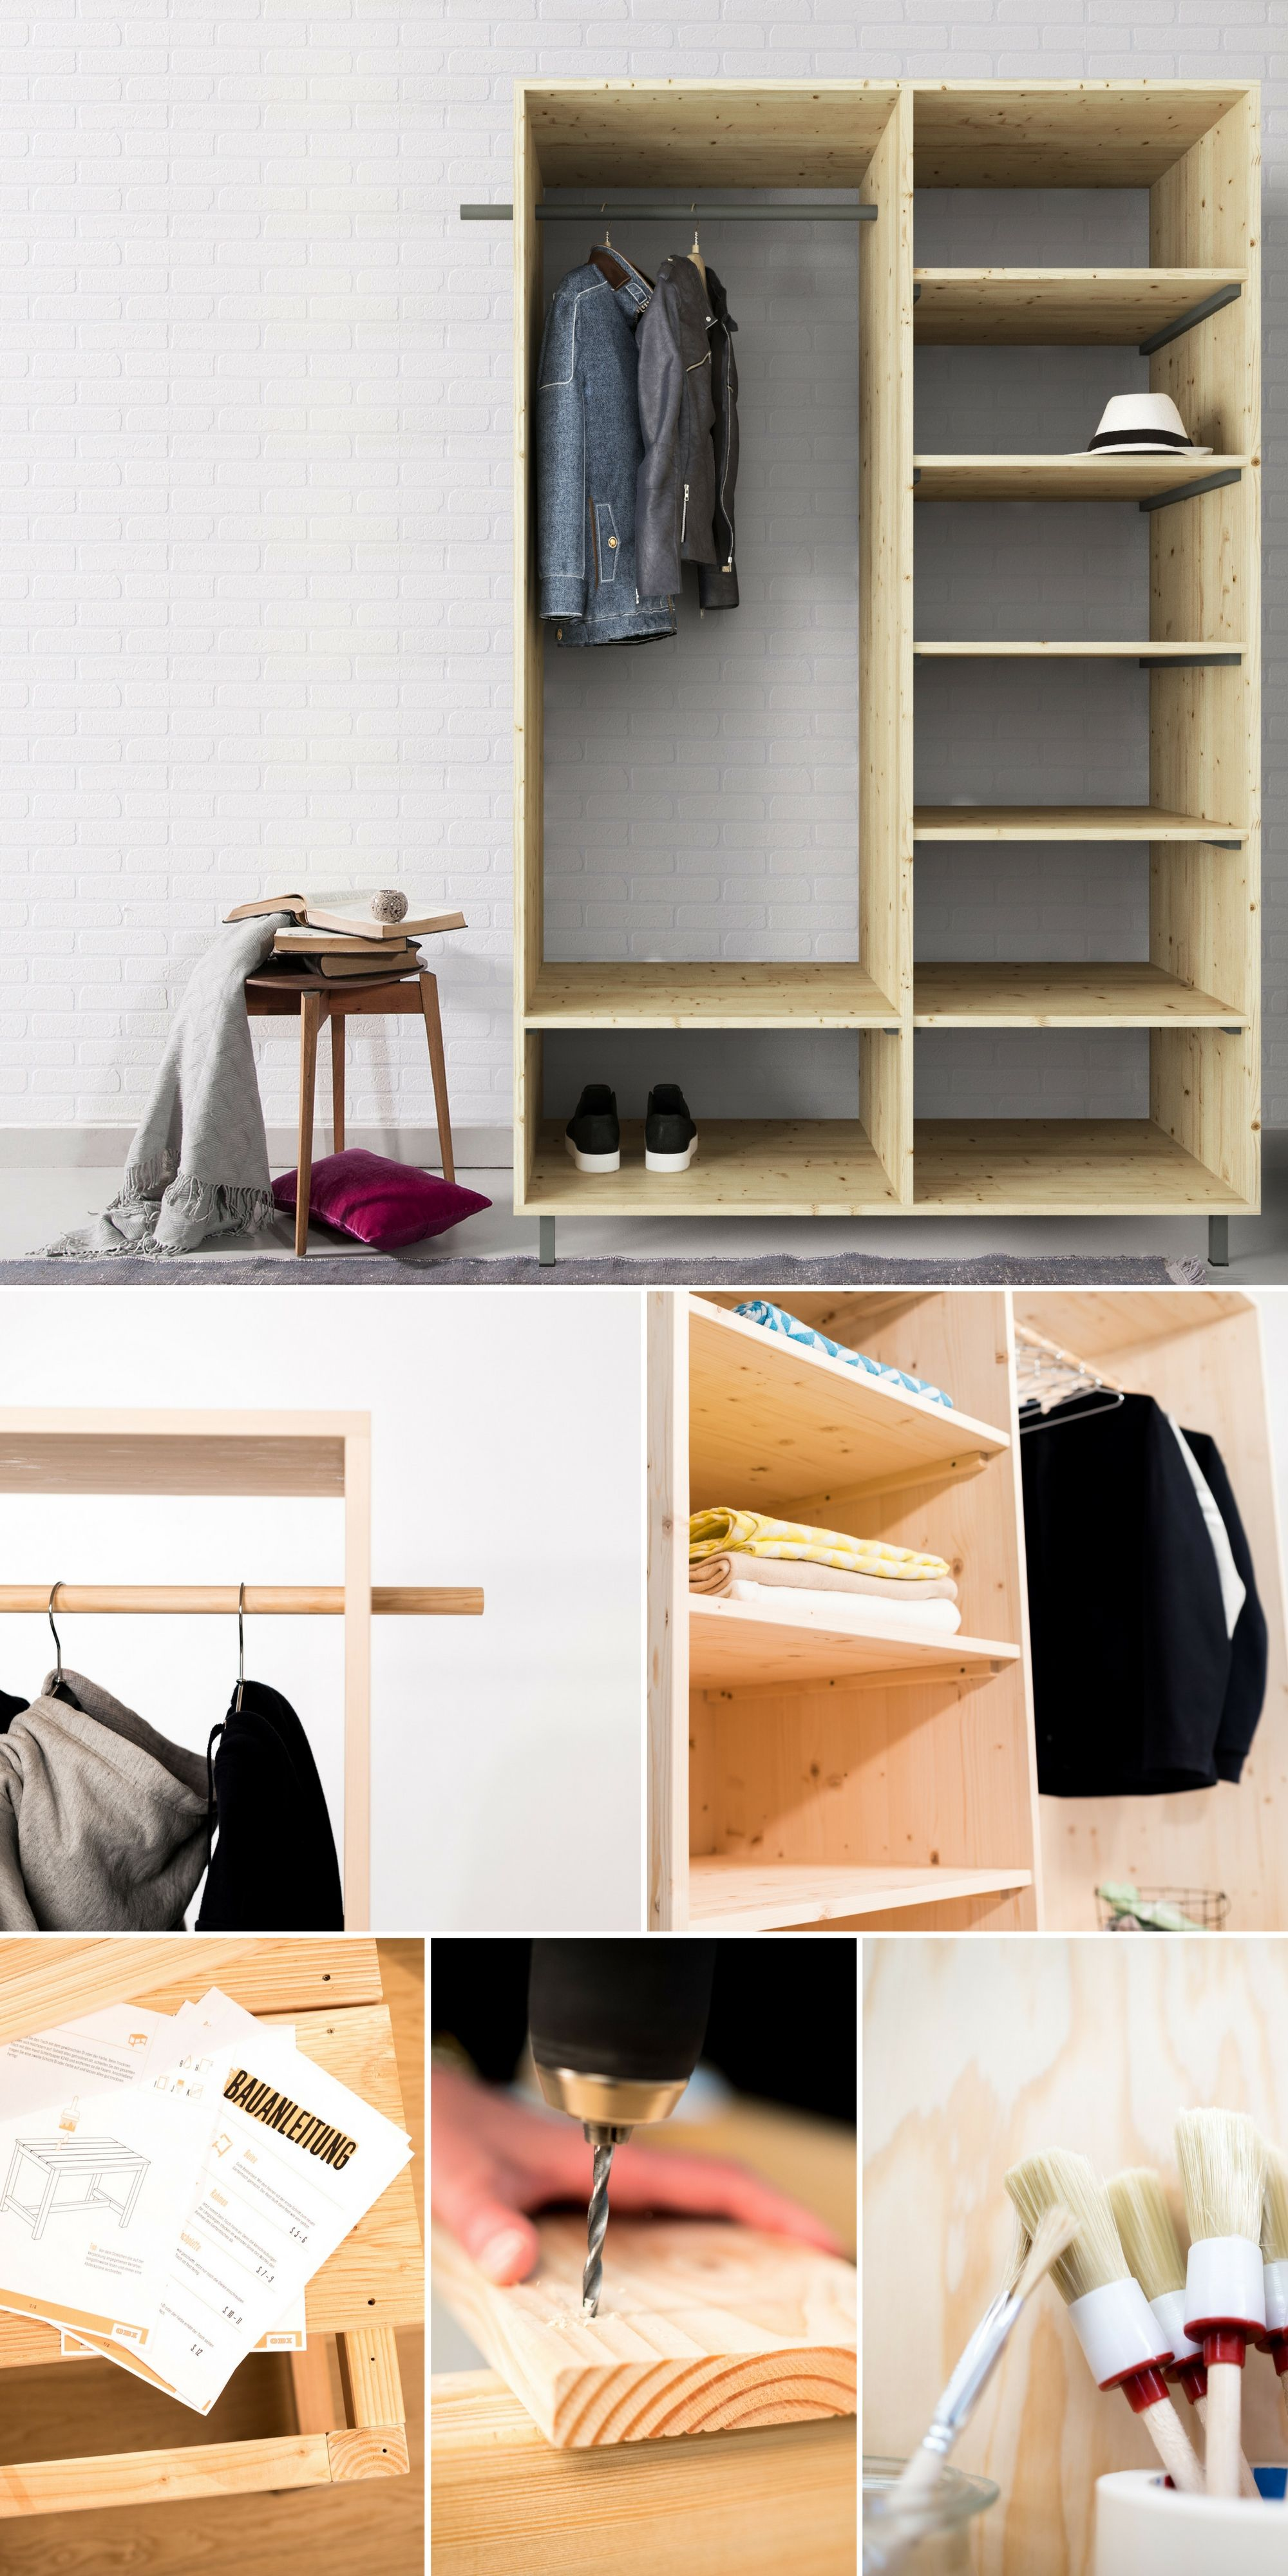 flurm bel lisa selber bauen aufbewahrung obi selbstbaum bel pinterest m bel flure und. Black Bedroom Furniture Sets. Home Design Ideas